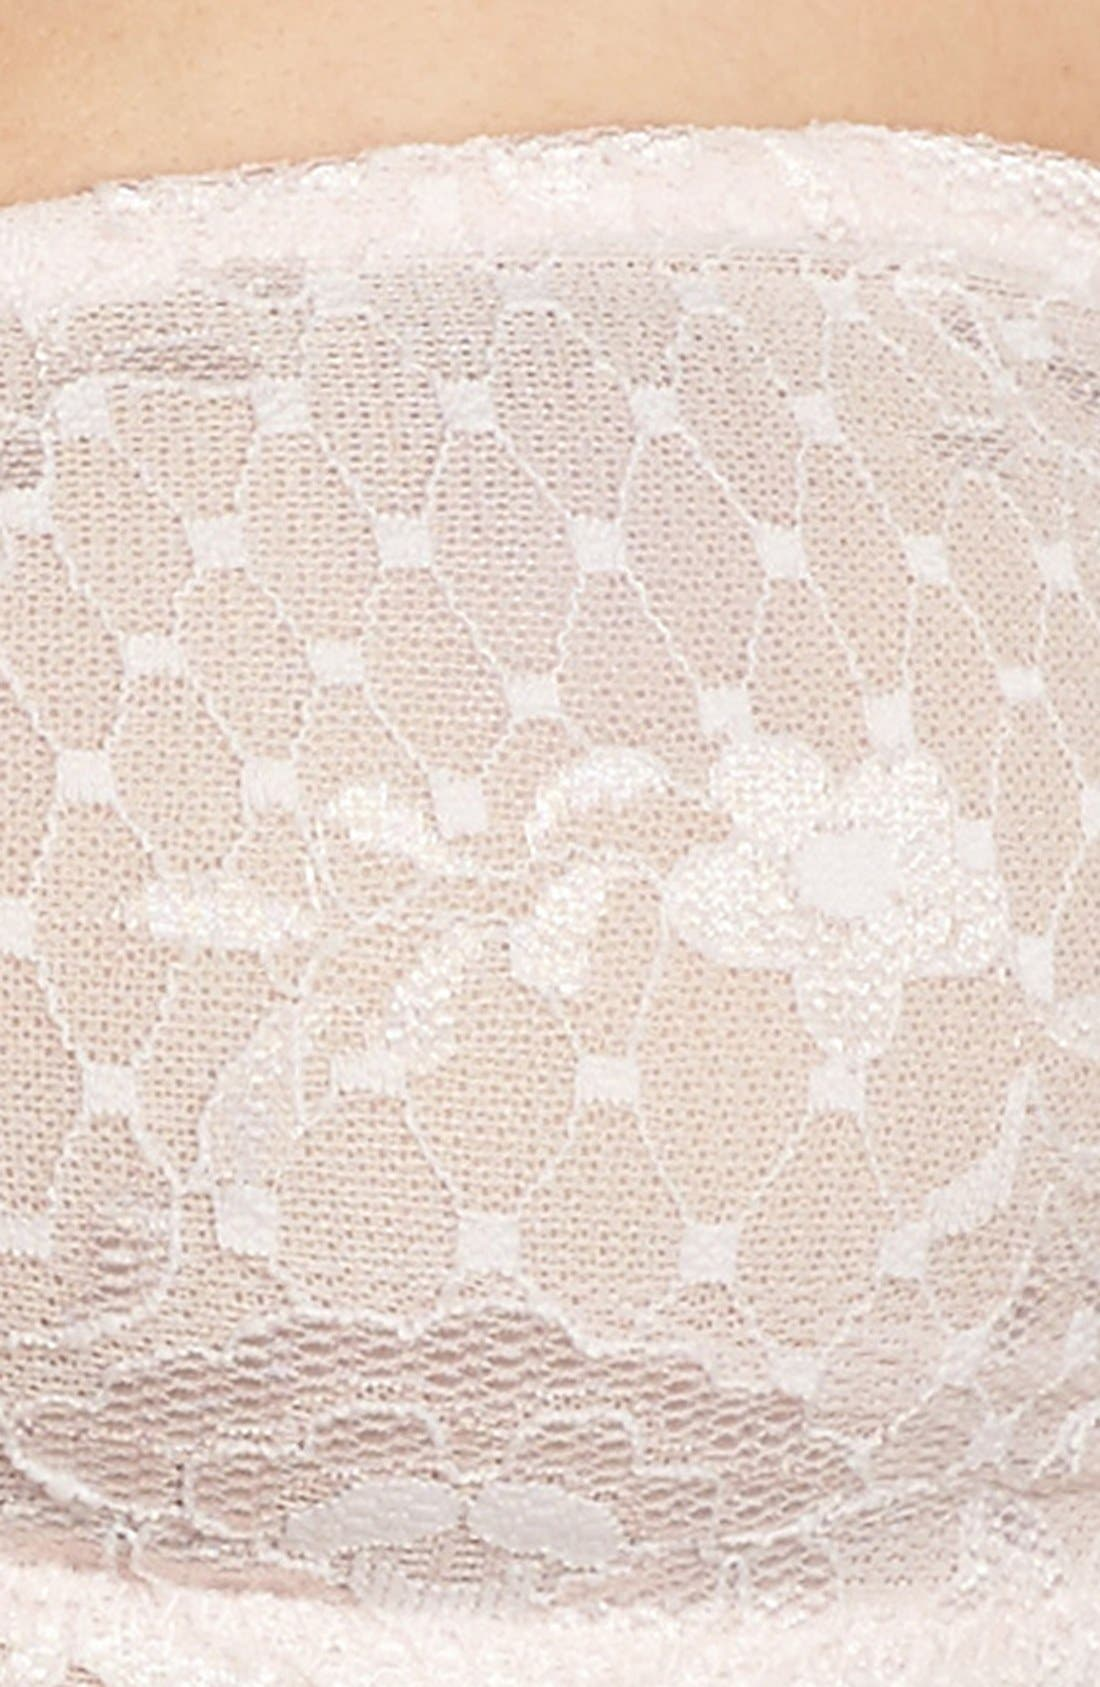 Intimately FP Lace Bandeau,                             Alternate thumbnail 111, color,